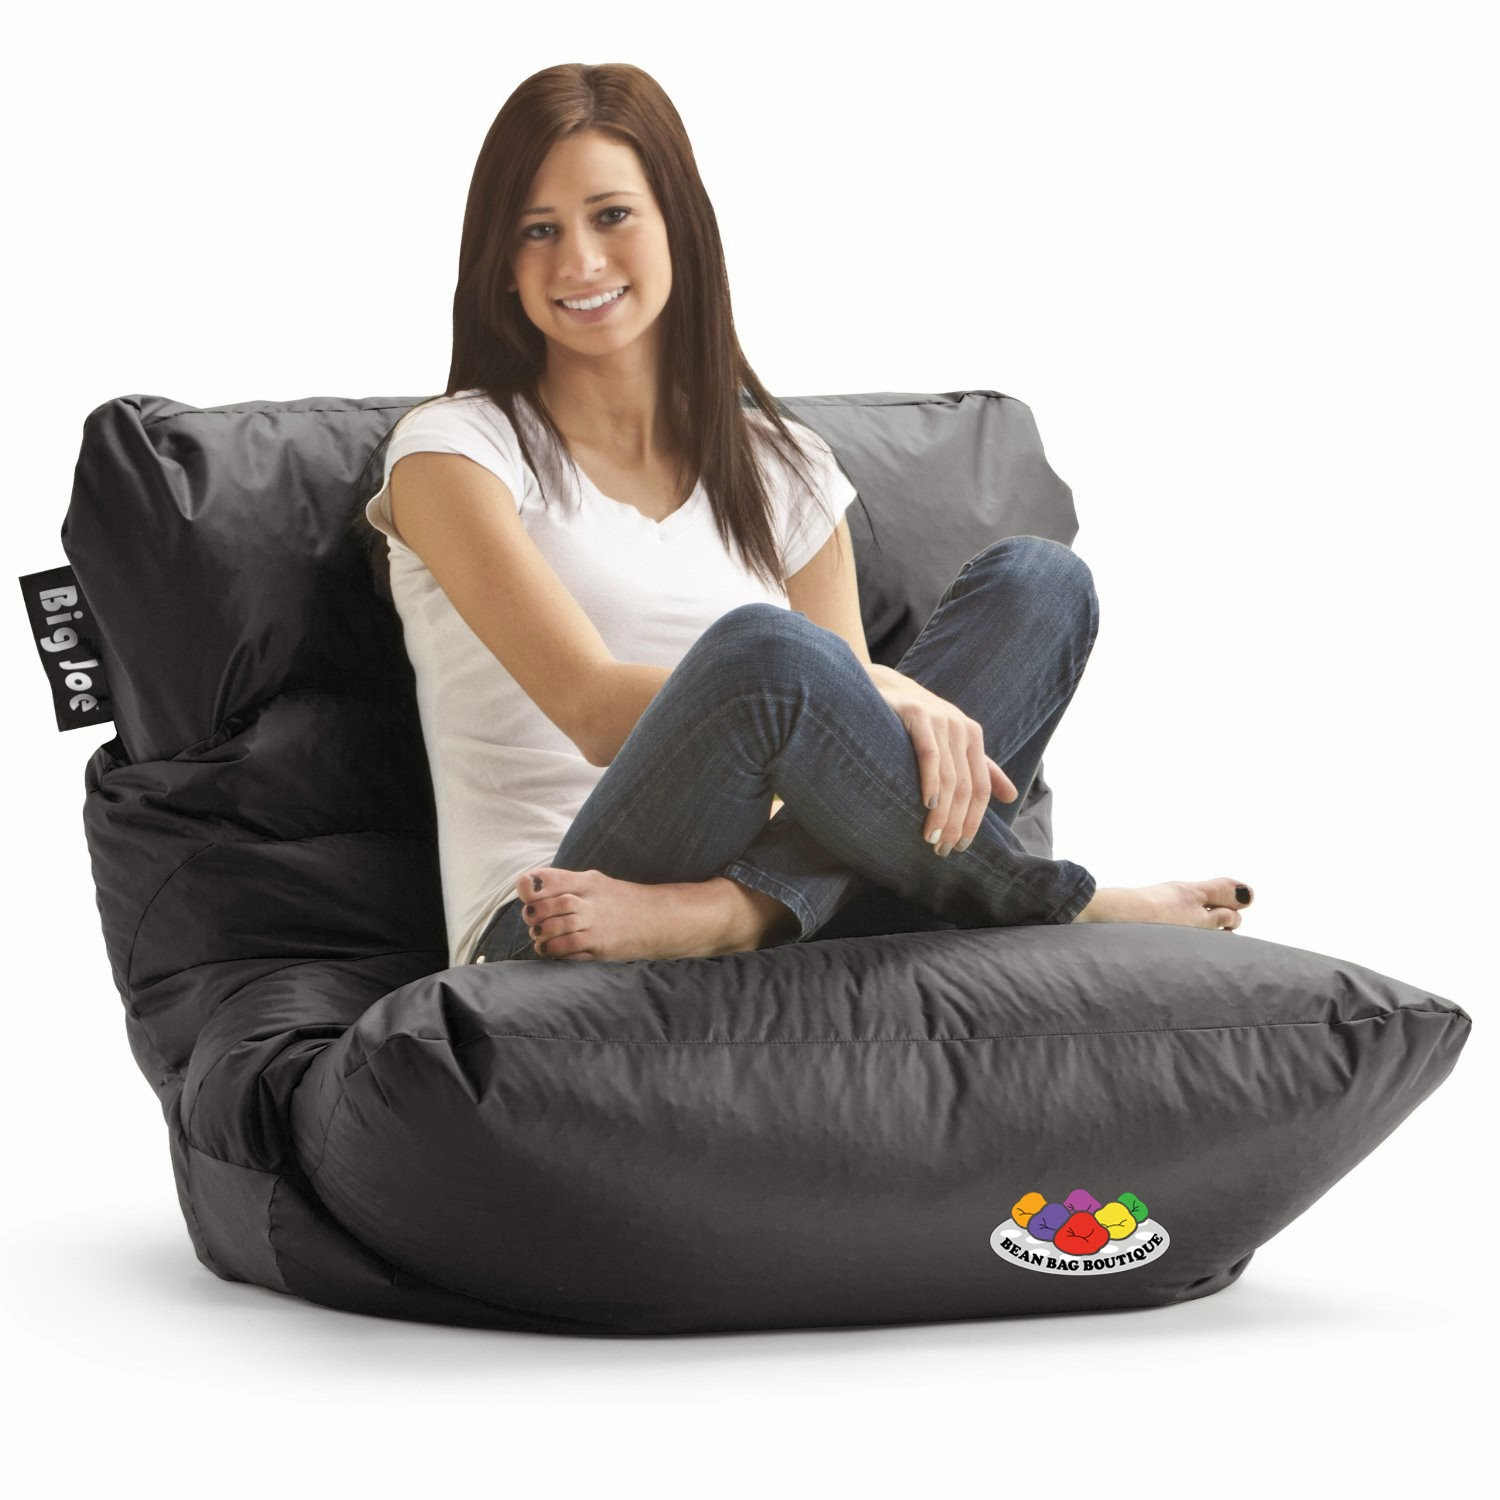 Comfortable Bean Bag Chairs Bean Bag Beanbag Beanbags Bean Bag Boutique Stylish